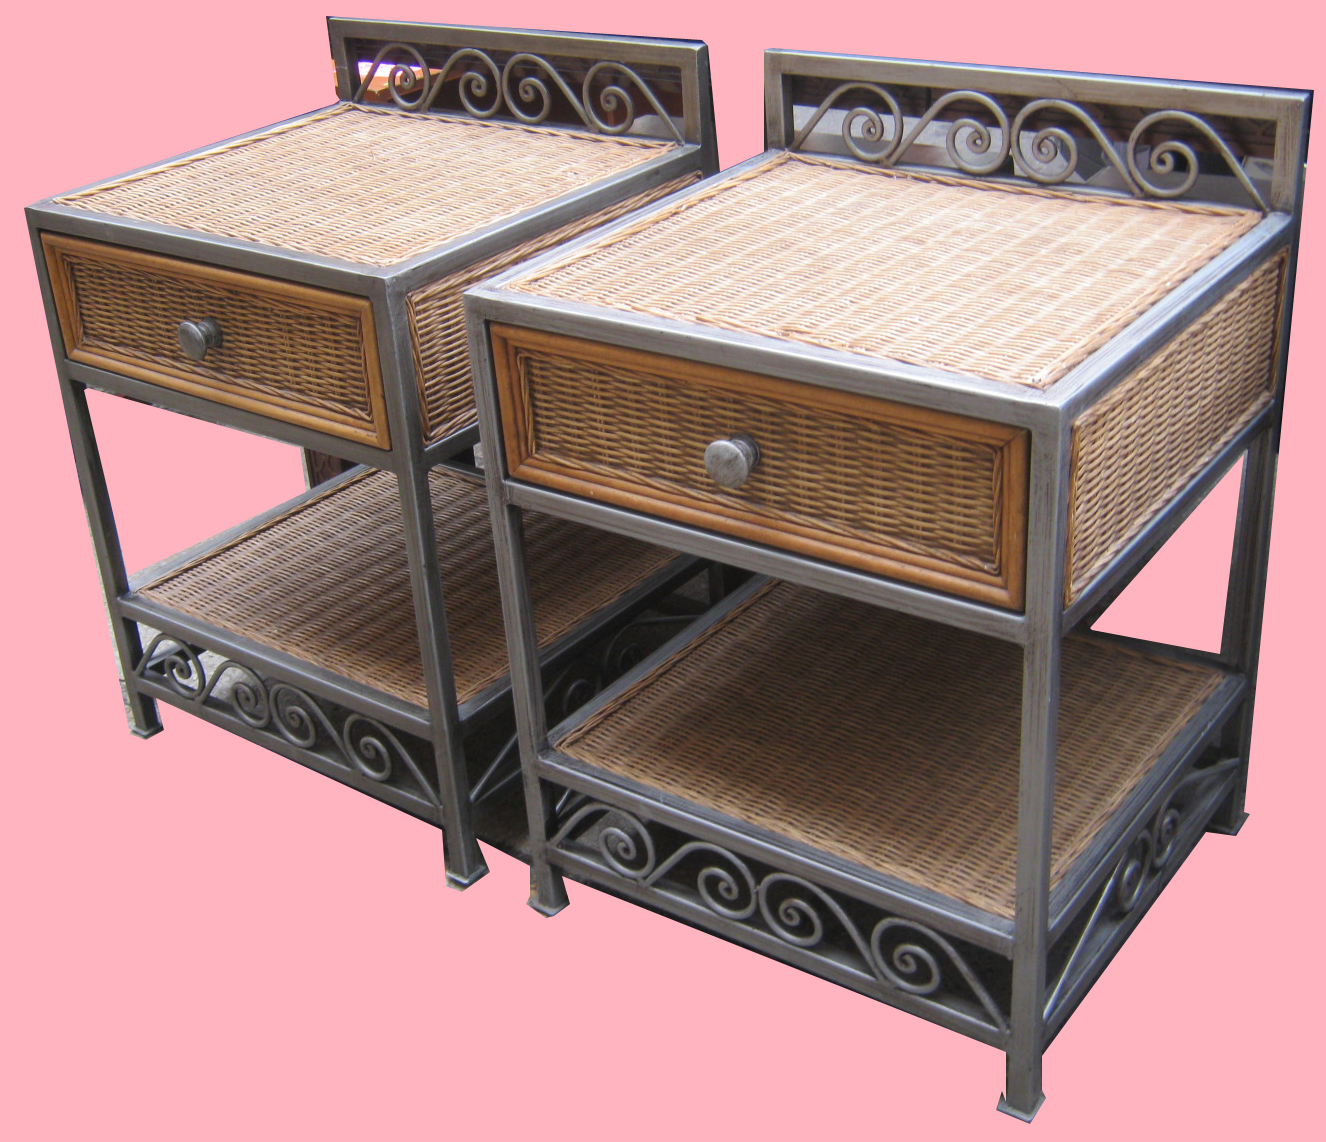 Wicker U0026 Brushed Metal Bedroom Furniture SOLD